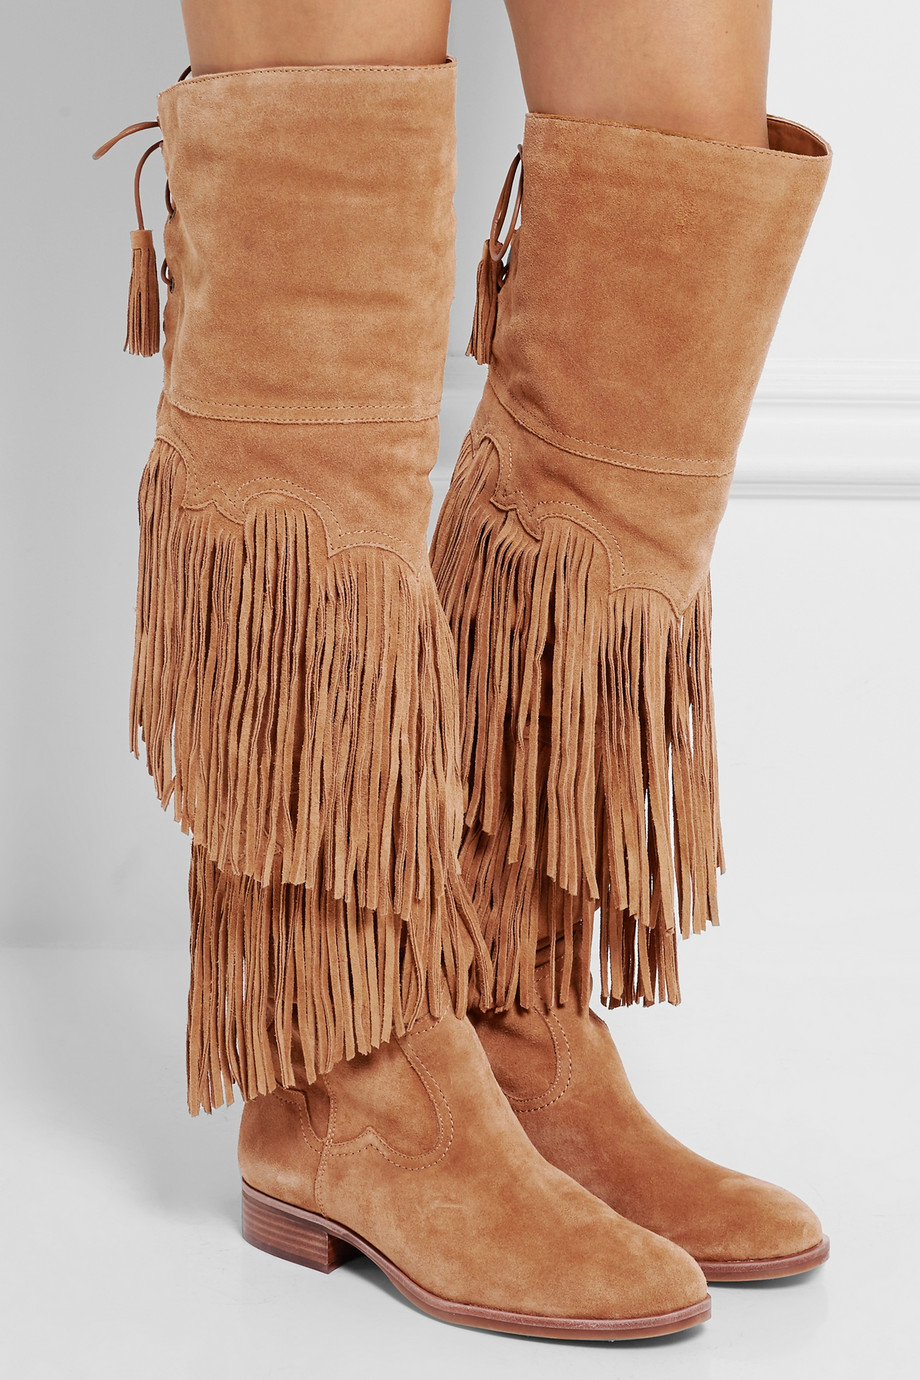 Winter Brown Fringed Over the Knee Boots Fashion Back Lace-up Flat Tassel Boots Woman Riding Boots High Quality Boots choudory new brown long fringe boots fashion tassel woman riding boots winter over the knee genuine leather motorcycle boots